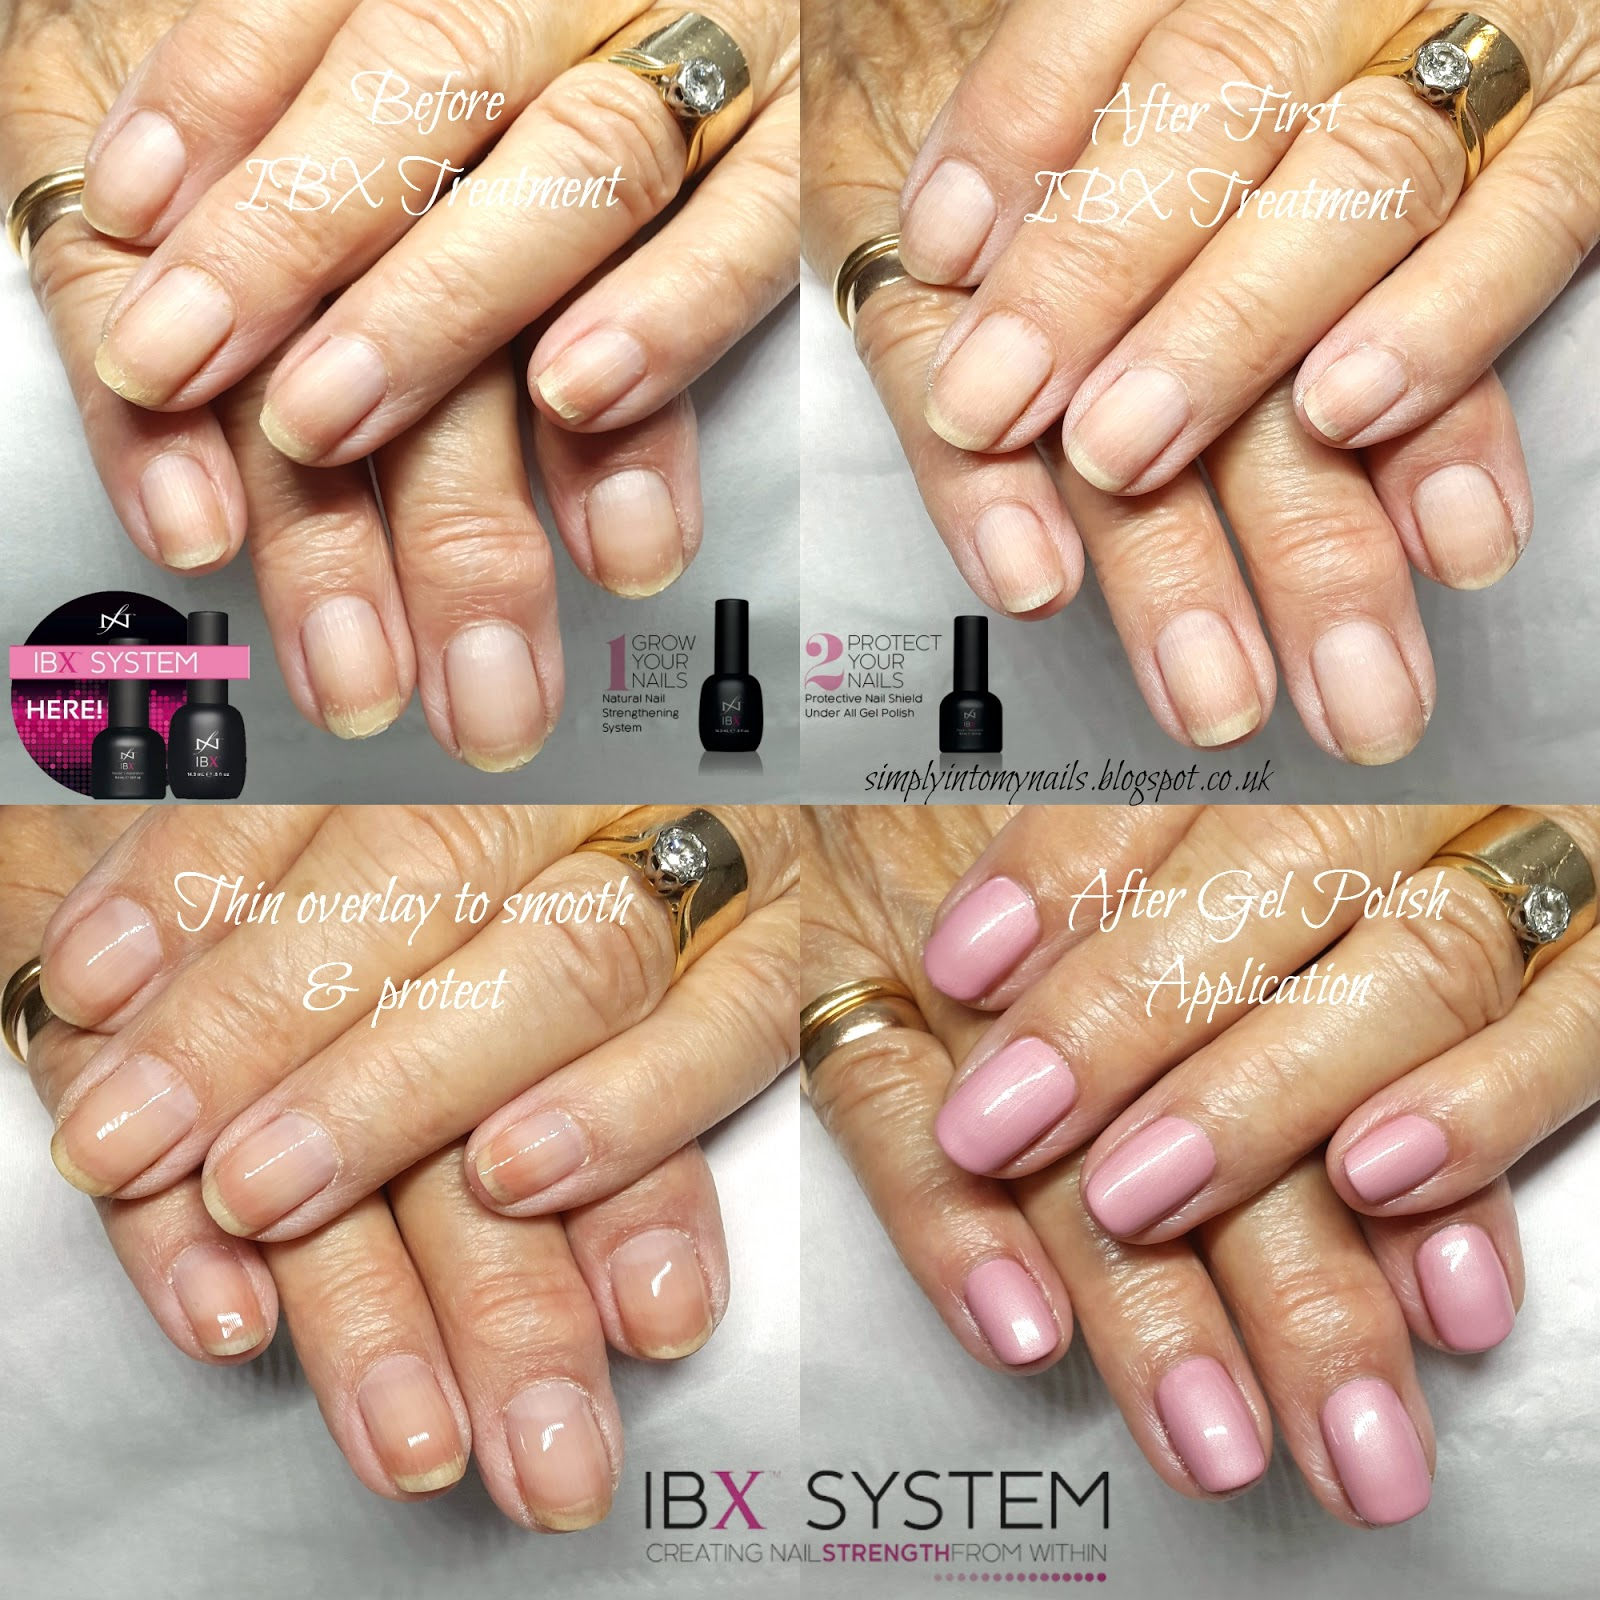 IBX Case Studies | Simply Into My NAILS